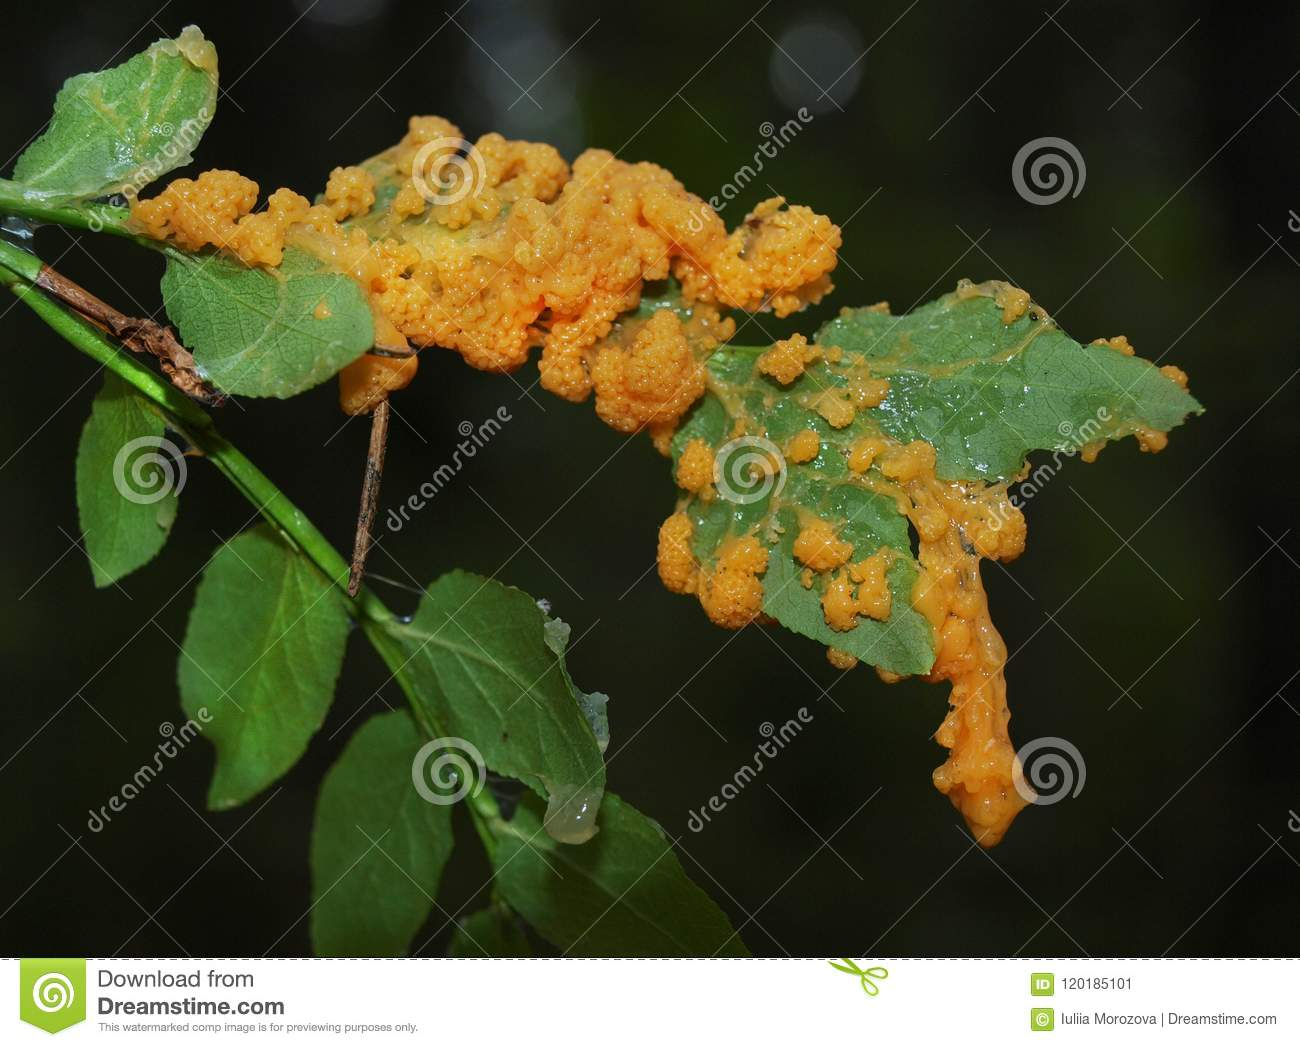 An orange plasmodium of a slime mold on a grass